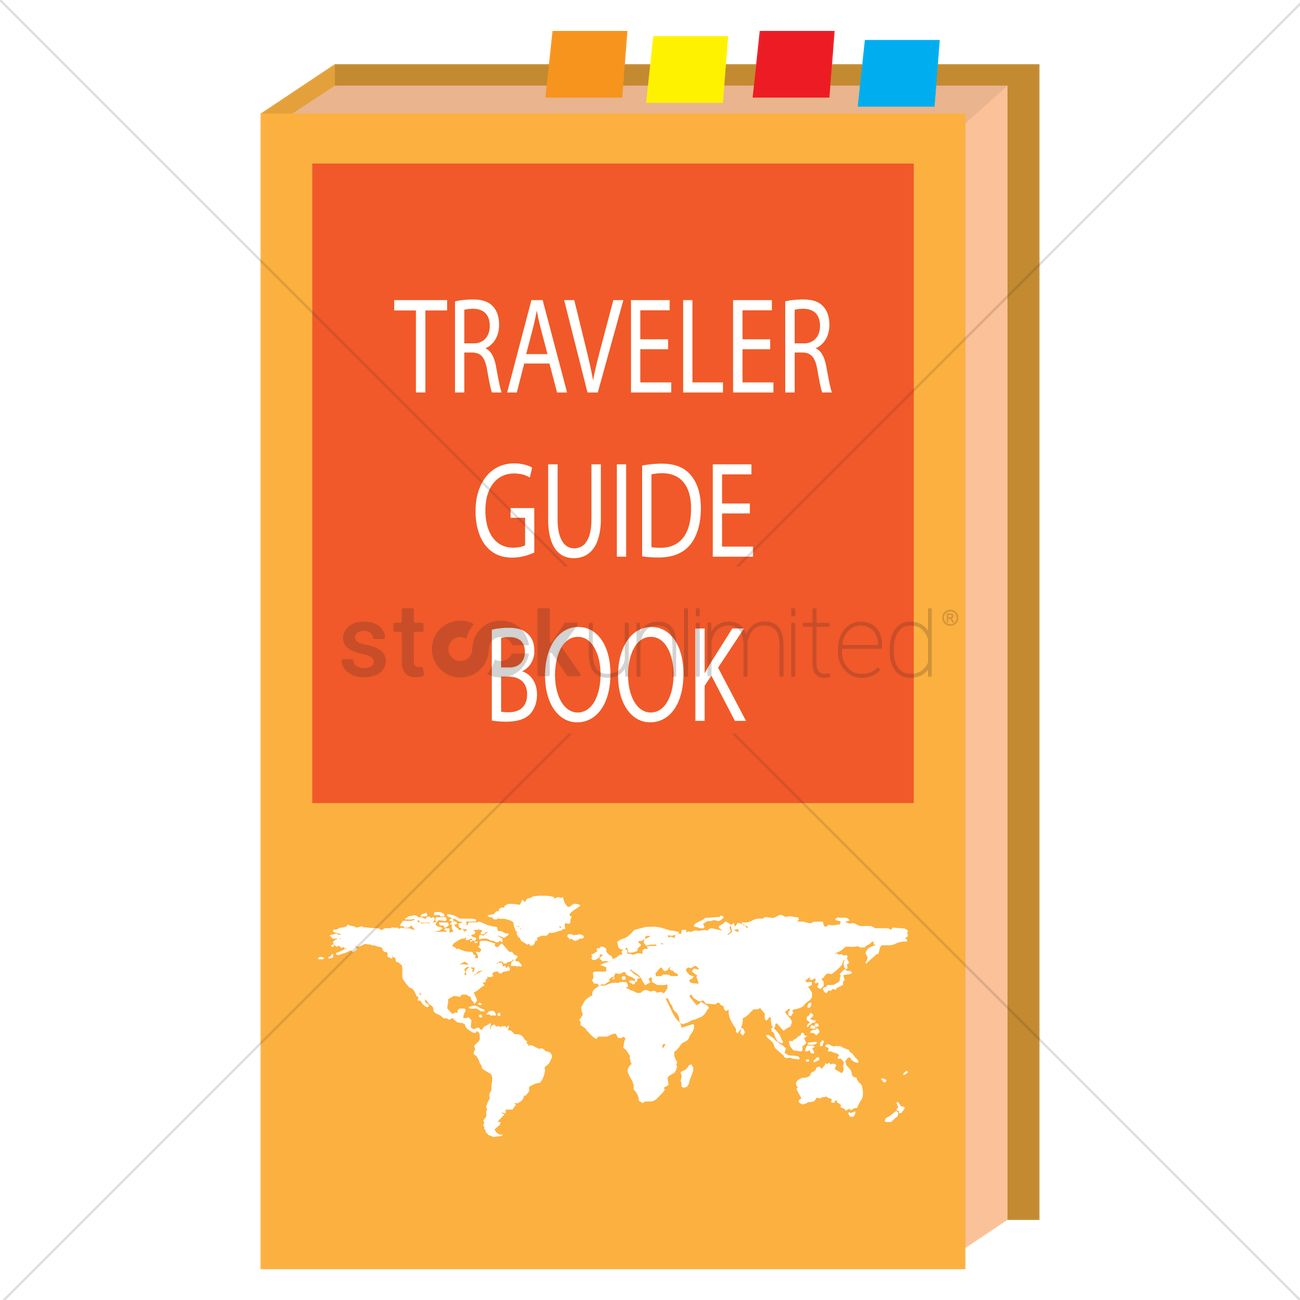 Travel Guide Book Vector Graphic